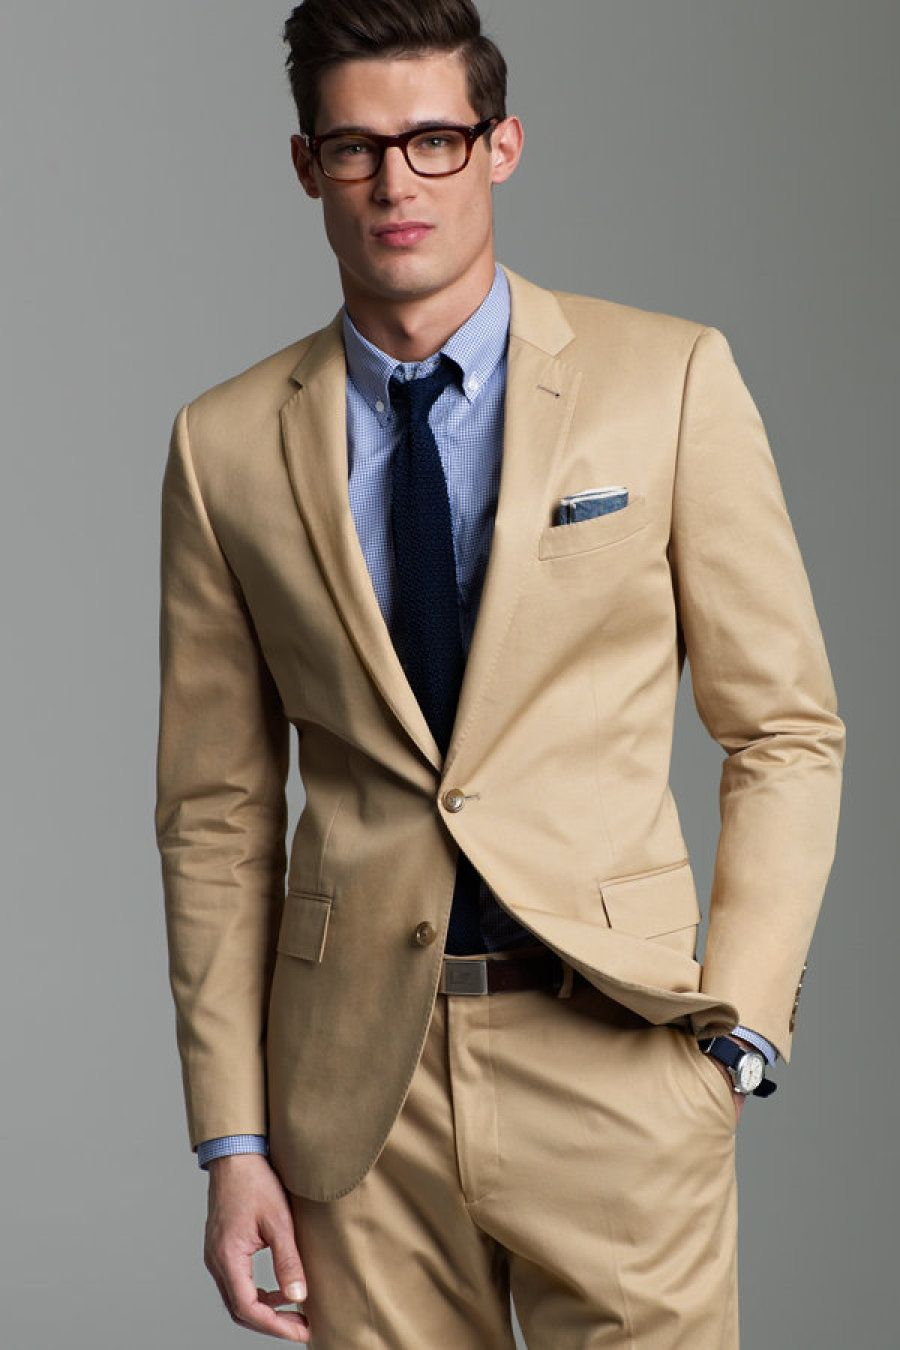 JCrew Wedding Suiting Fall/Holiday 2011 | Suits | Pinterest ...